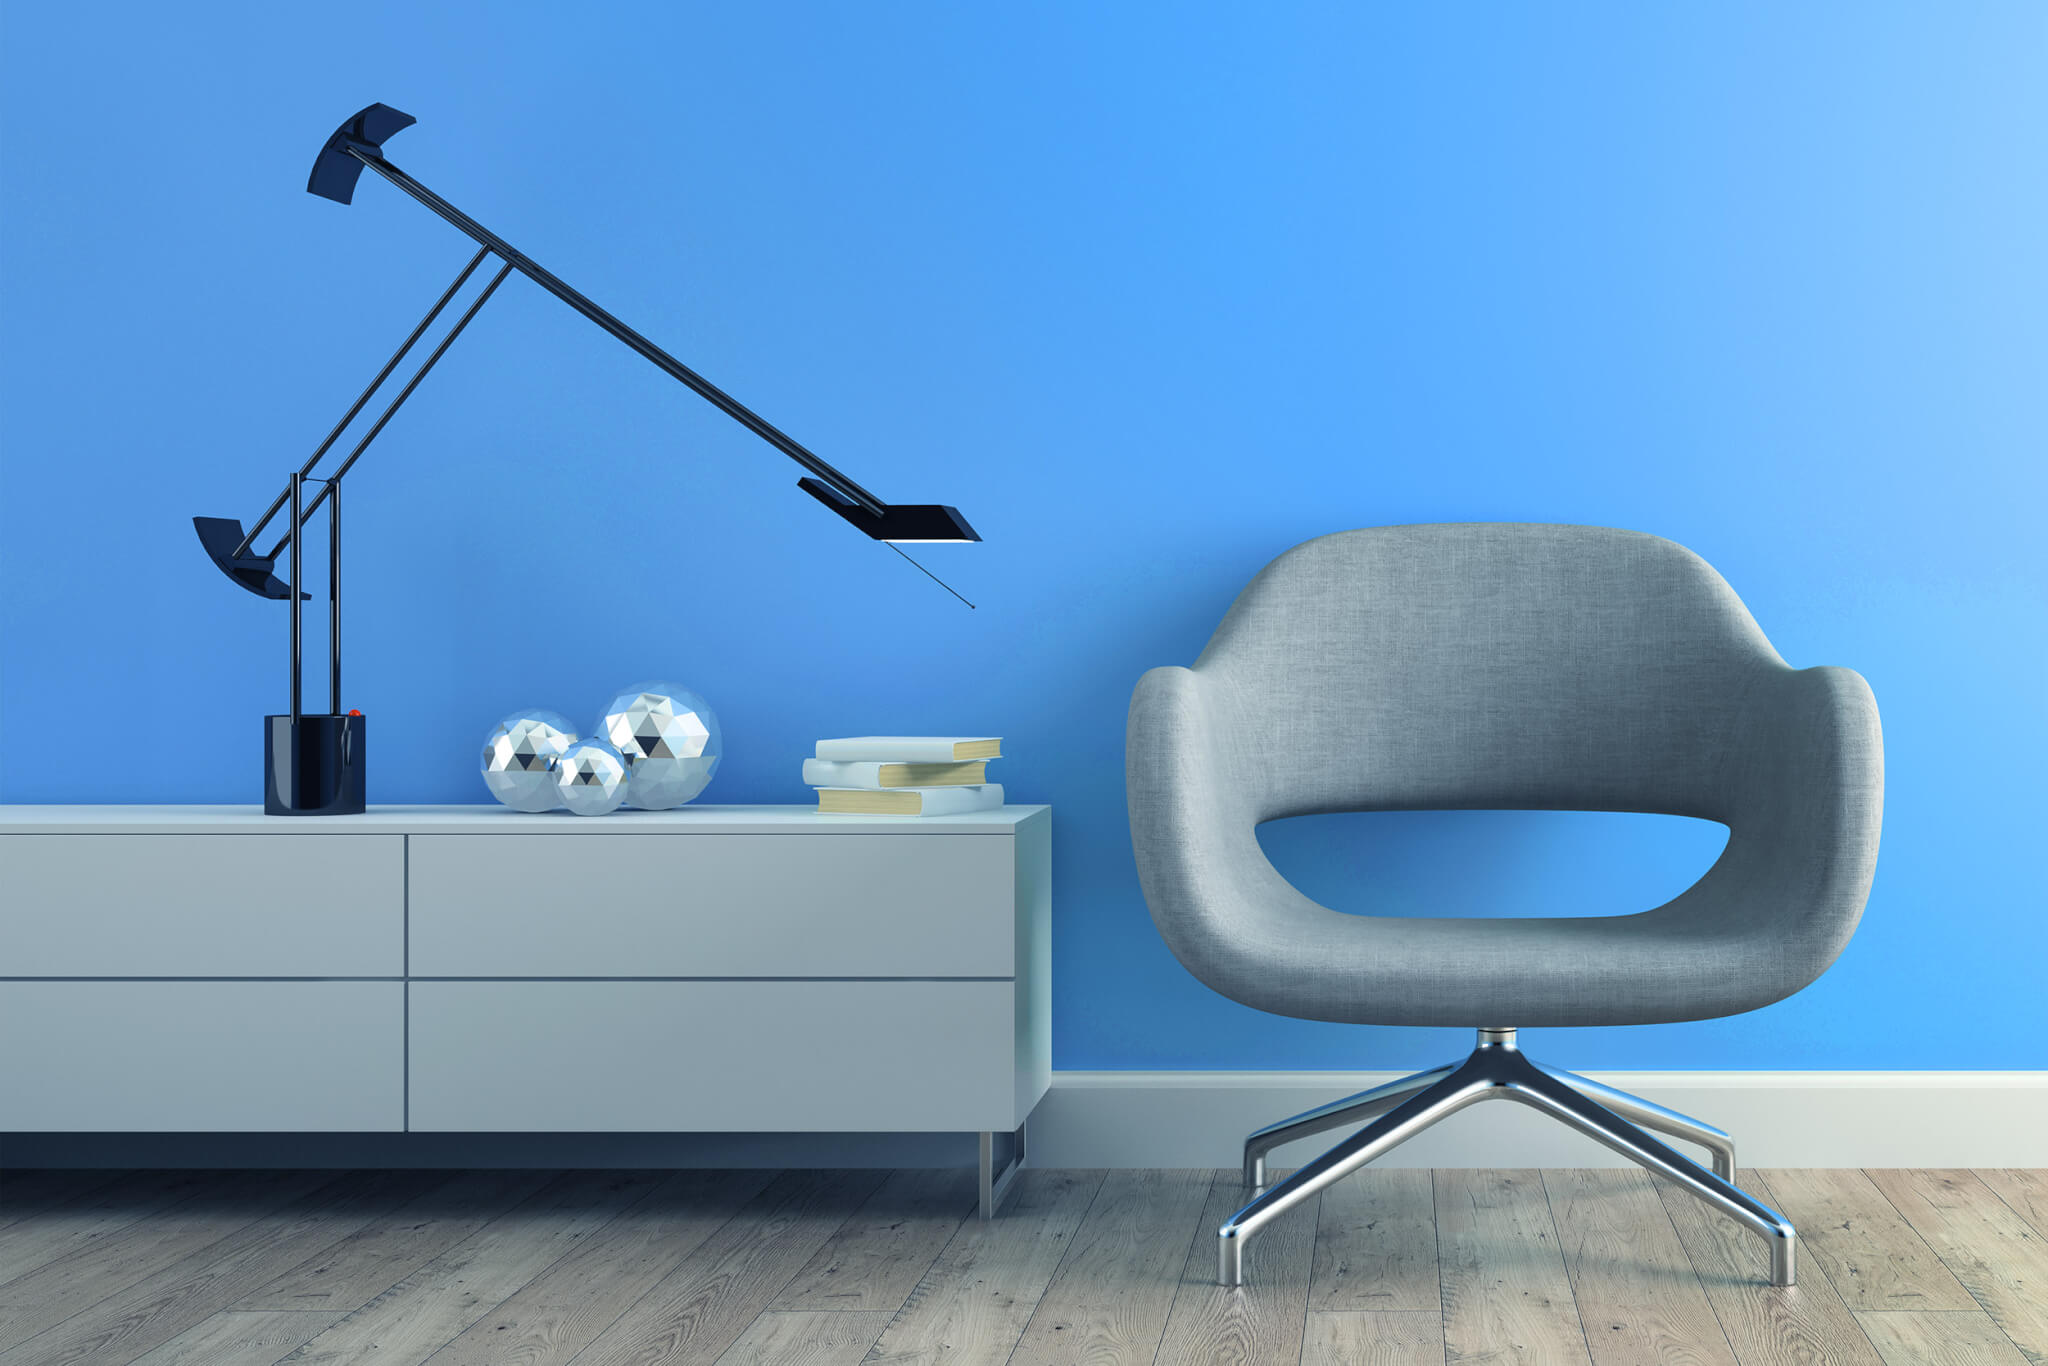 https://leaffurniture.in/wp-content/uploads/2018/08/image-chair-blue-wall.jpg